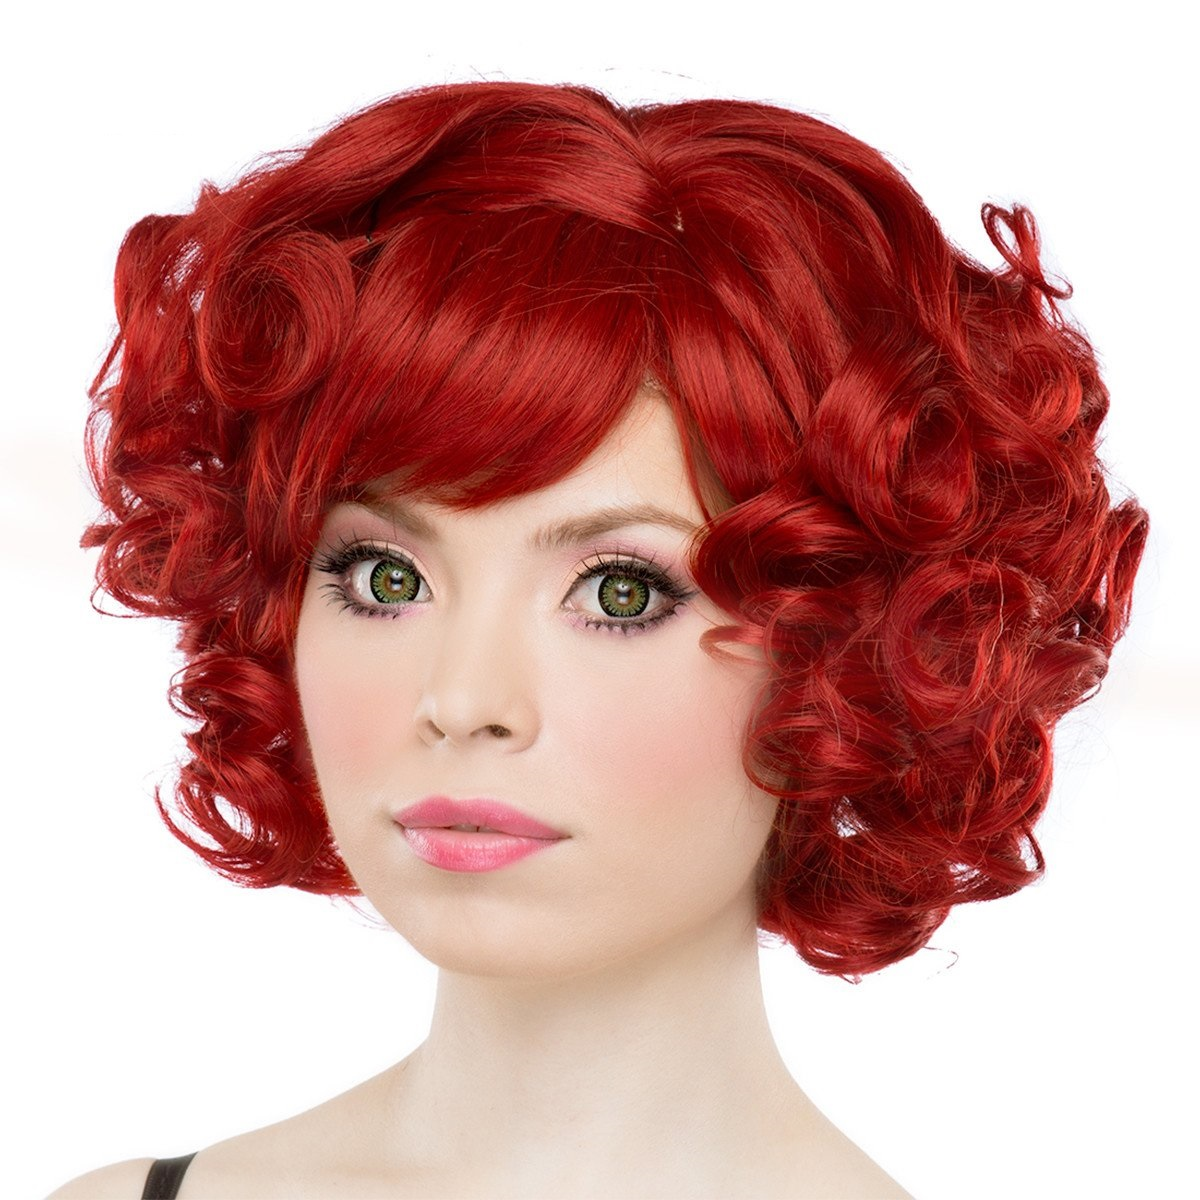 Rockstar Quality Curly Crimson Red Short Bob Costume Wig Women s ... 3280a351a